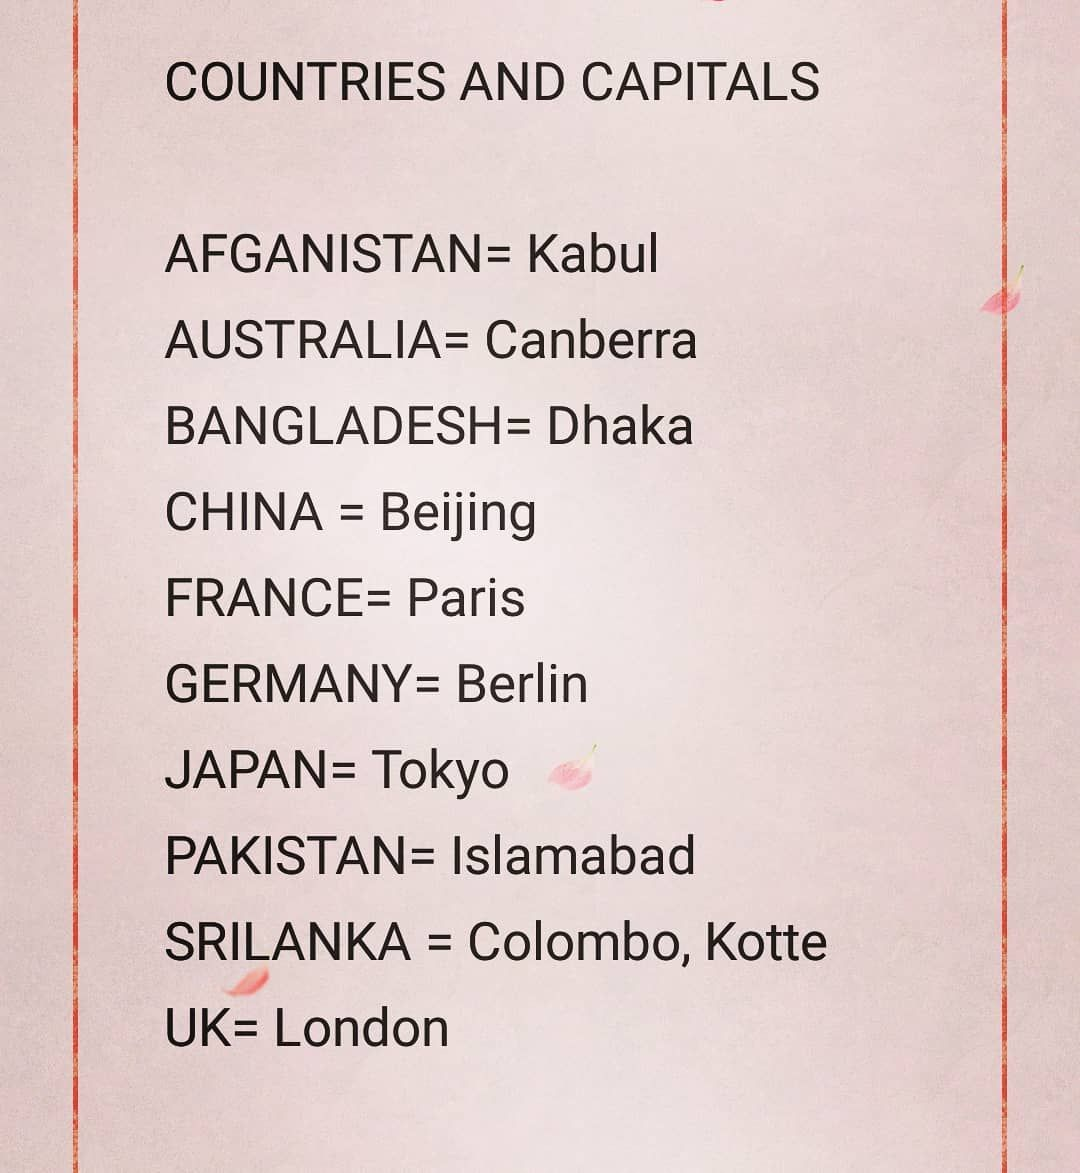 Some Important Countries And Their Capitals